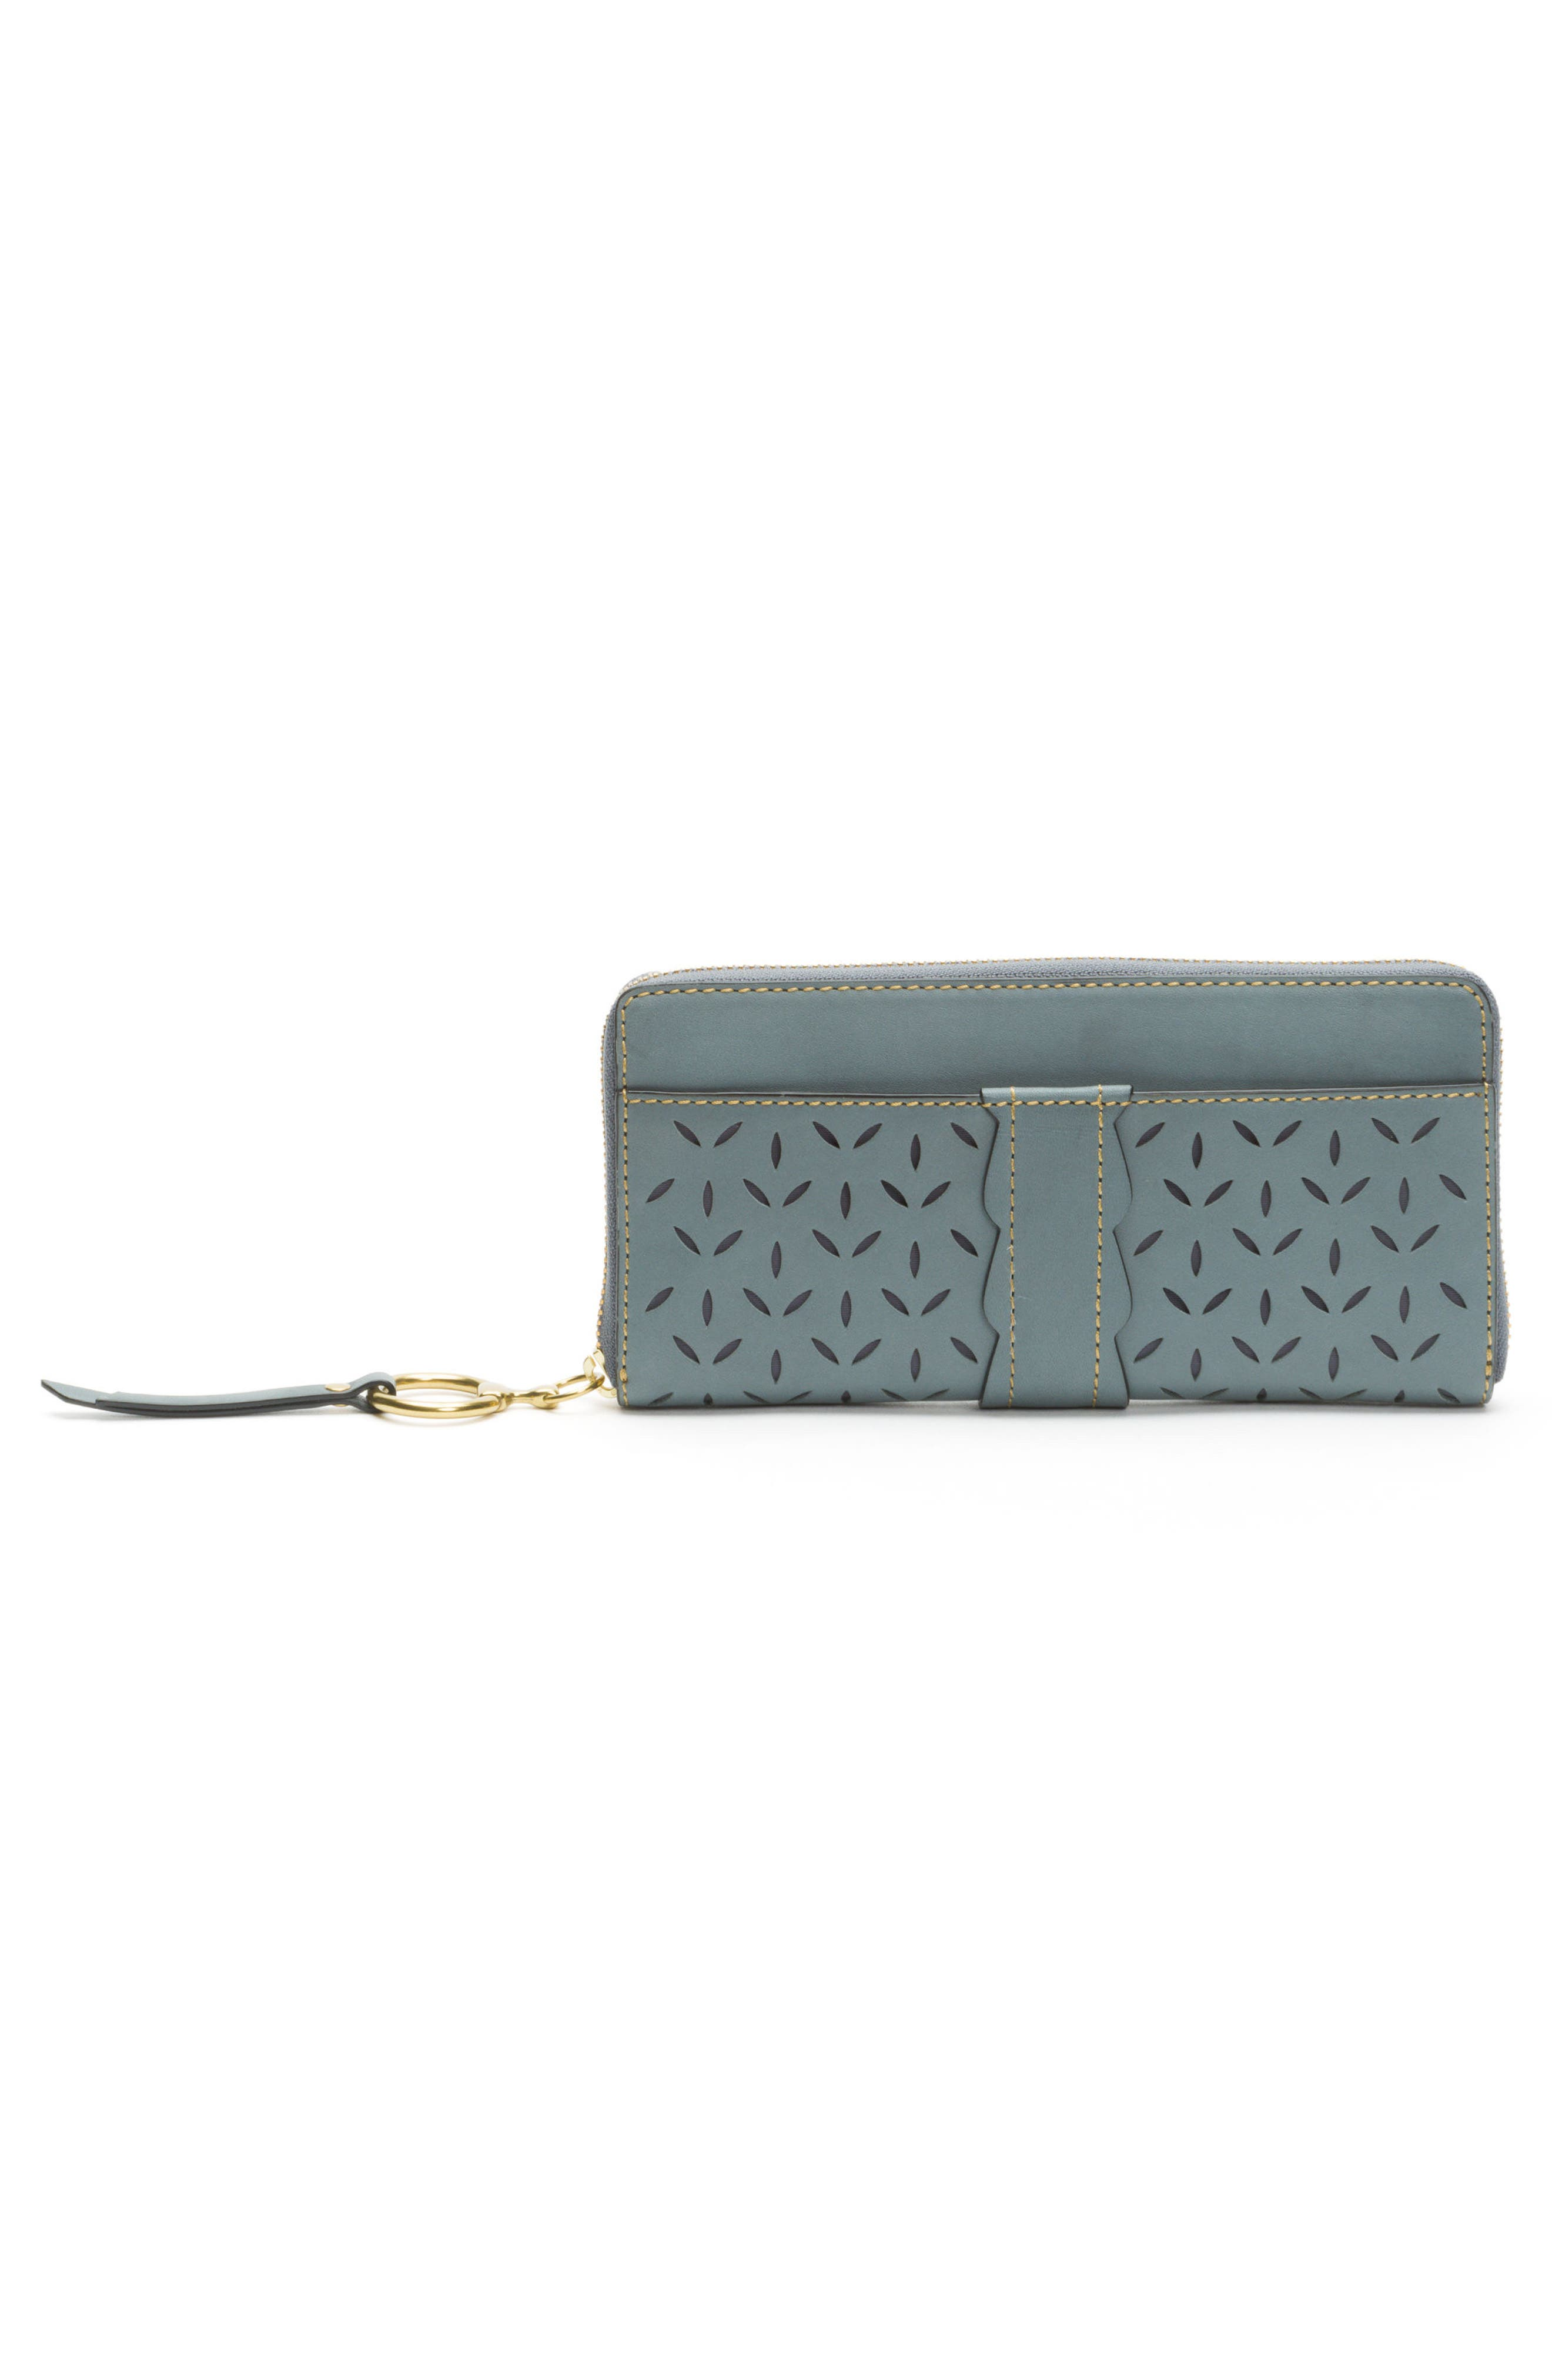 Large Ilana Perforated Leather Zip Wallet,                             Alternate thumbnail 3, color,                             Steel Grey